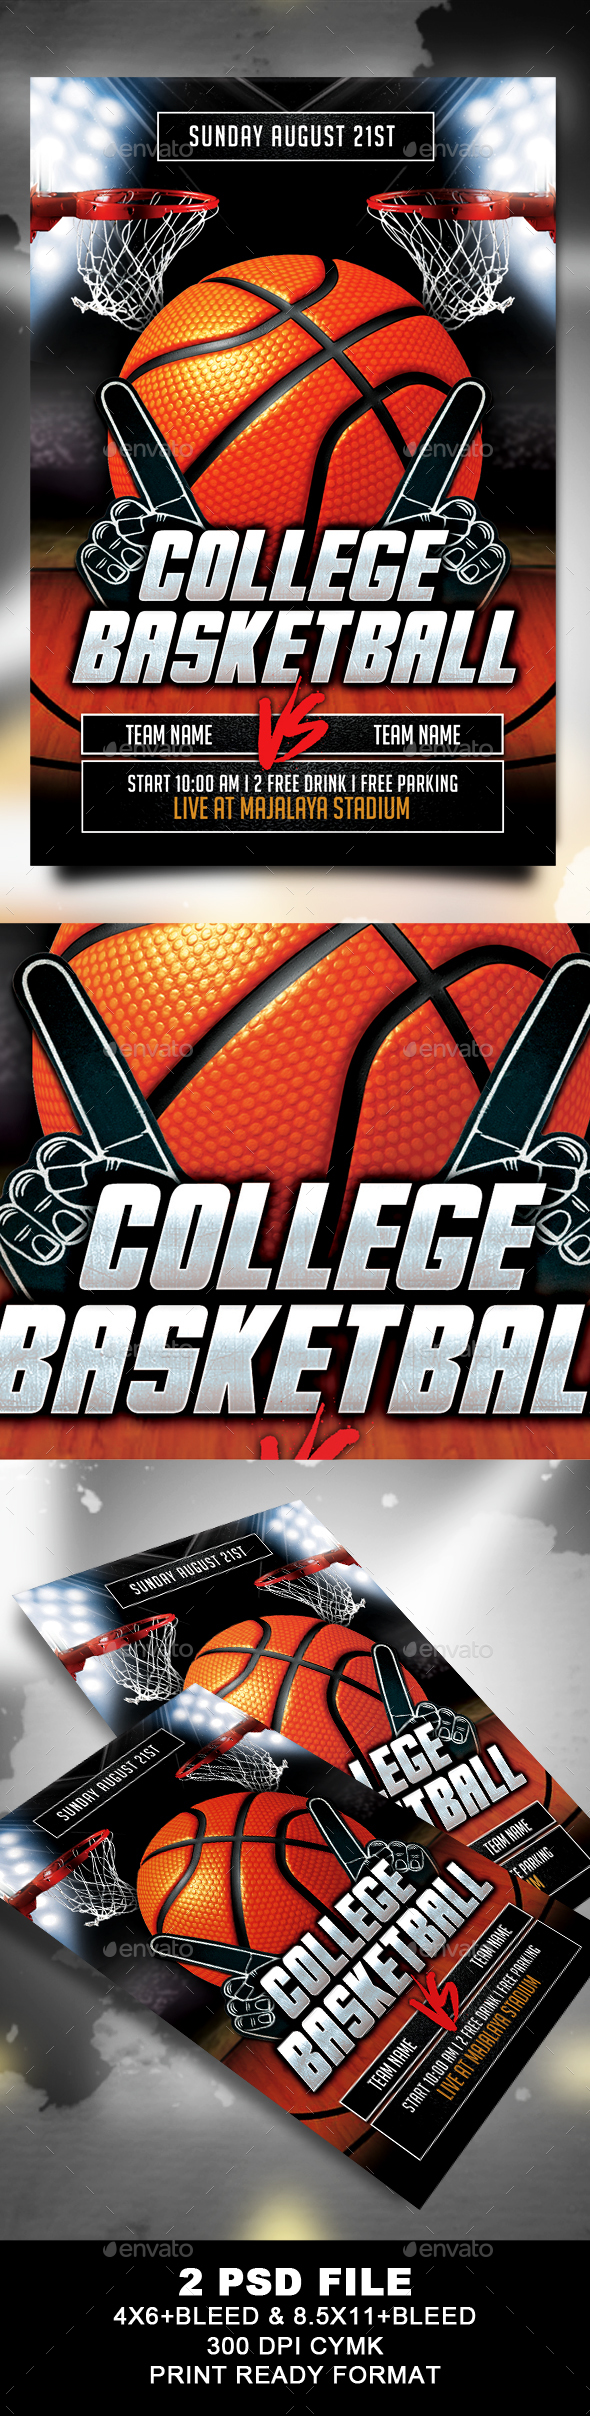 Graphicriver College Basketball Flyer 19487150